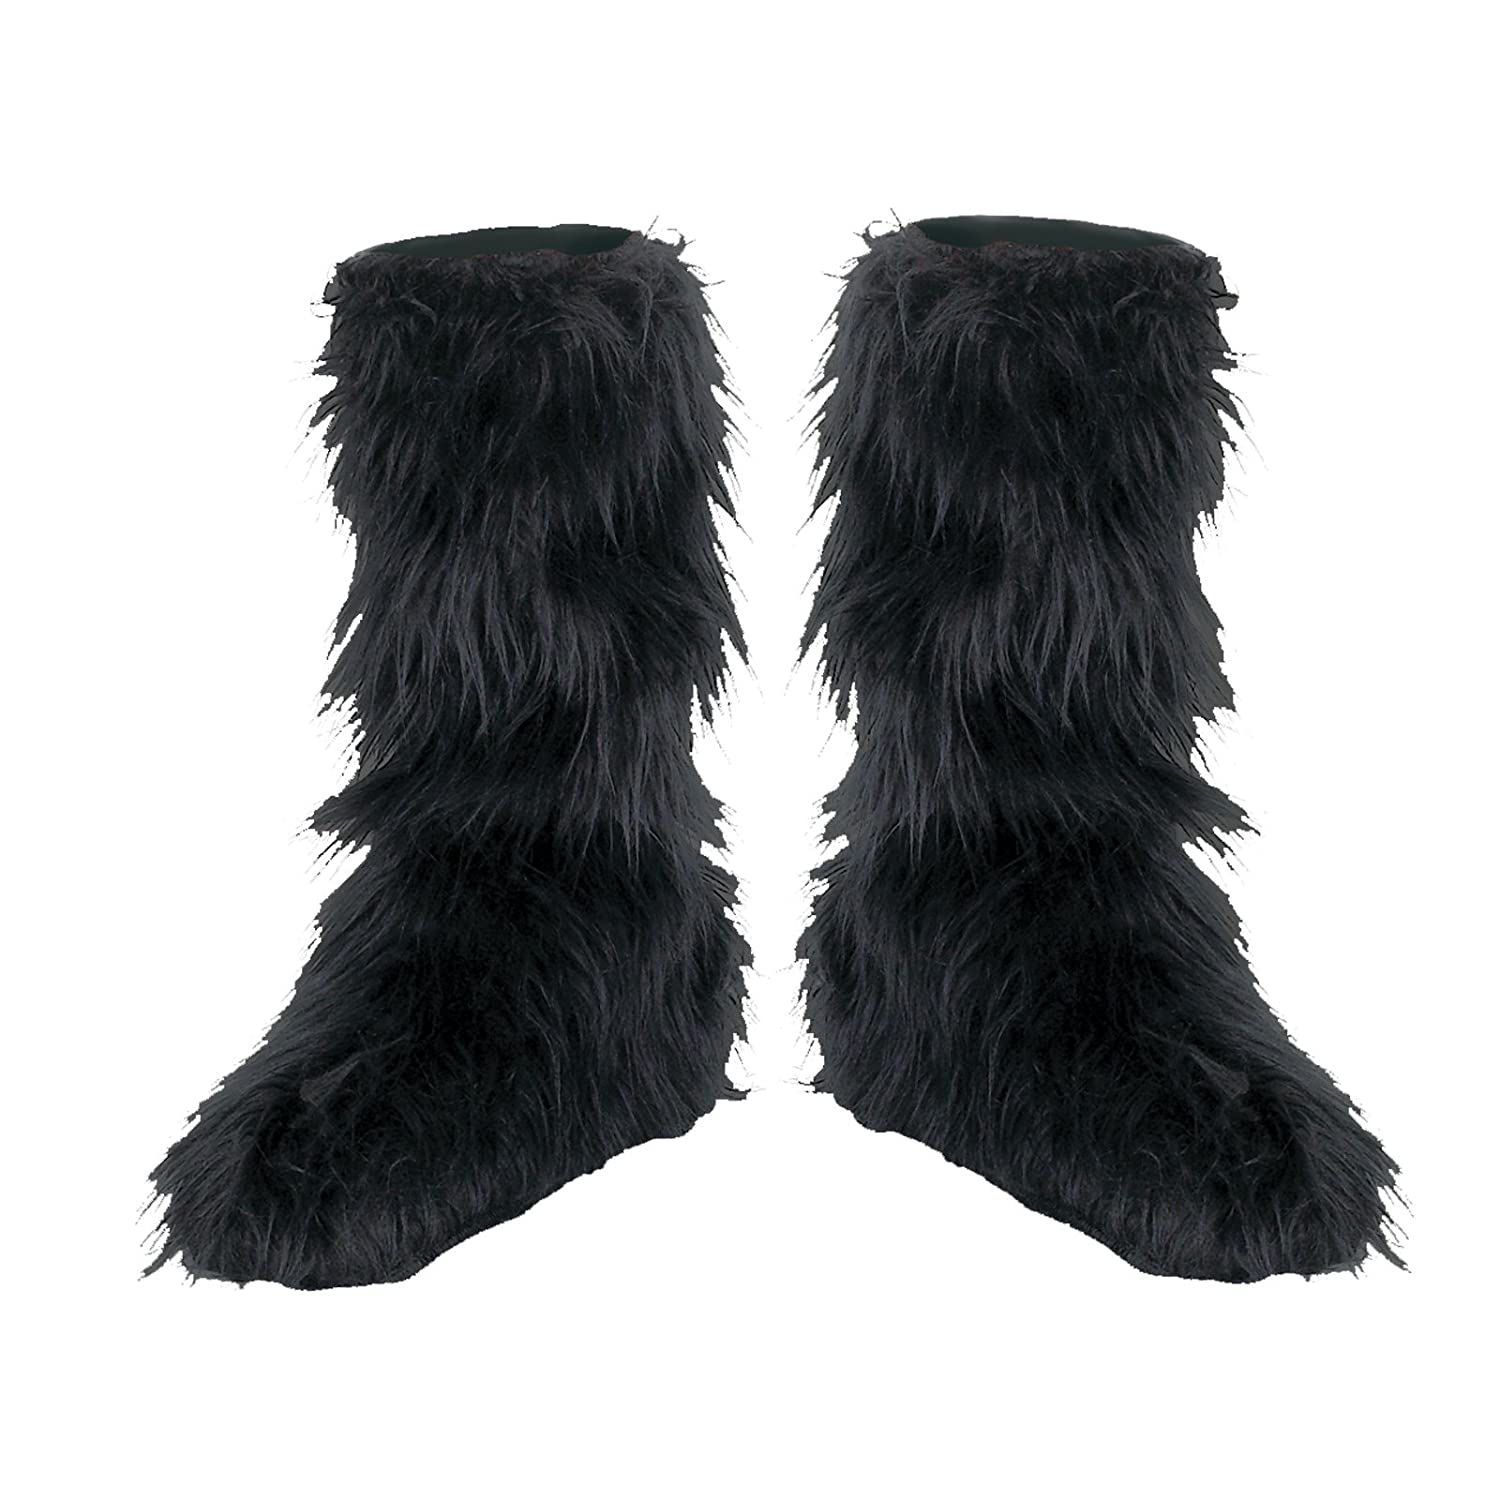 Disguise Inc 20007 Black Furry Boot Covers Child